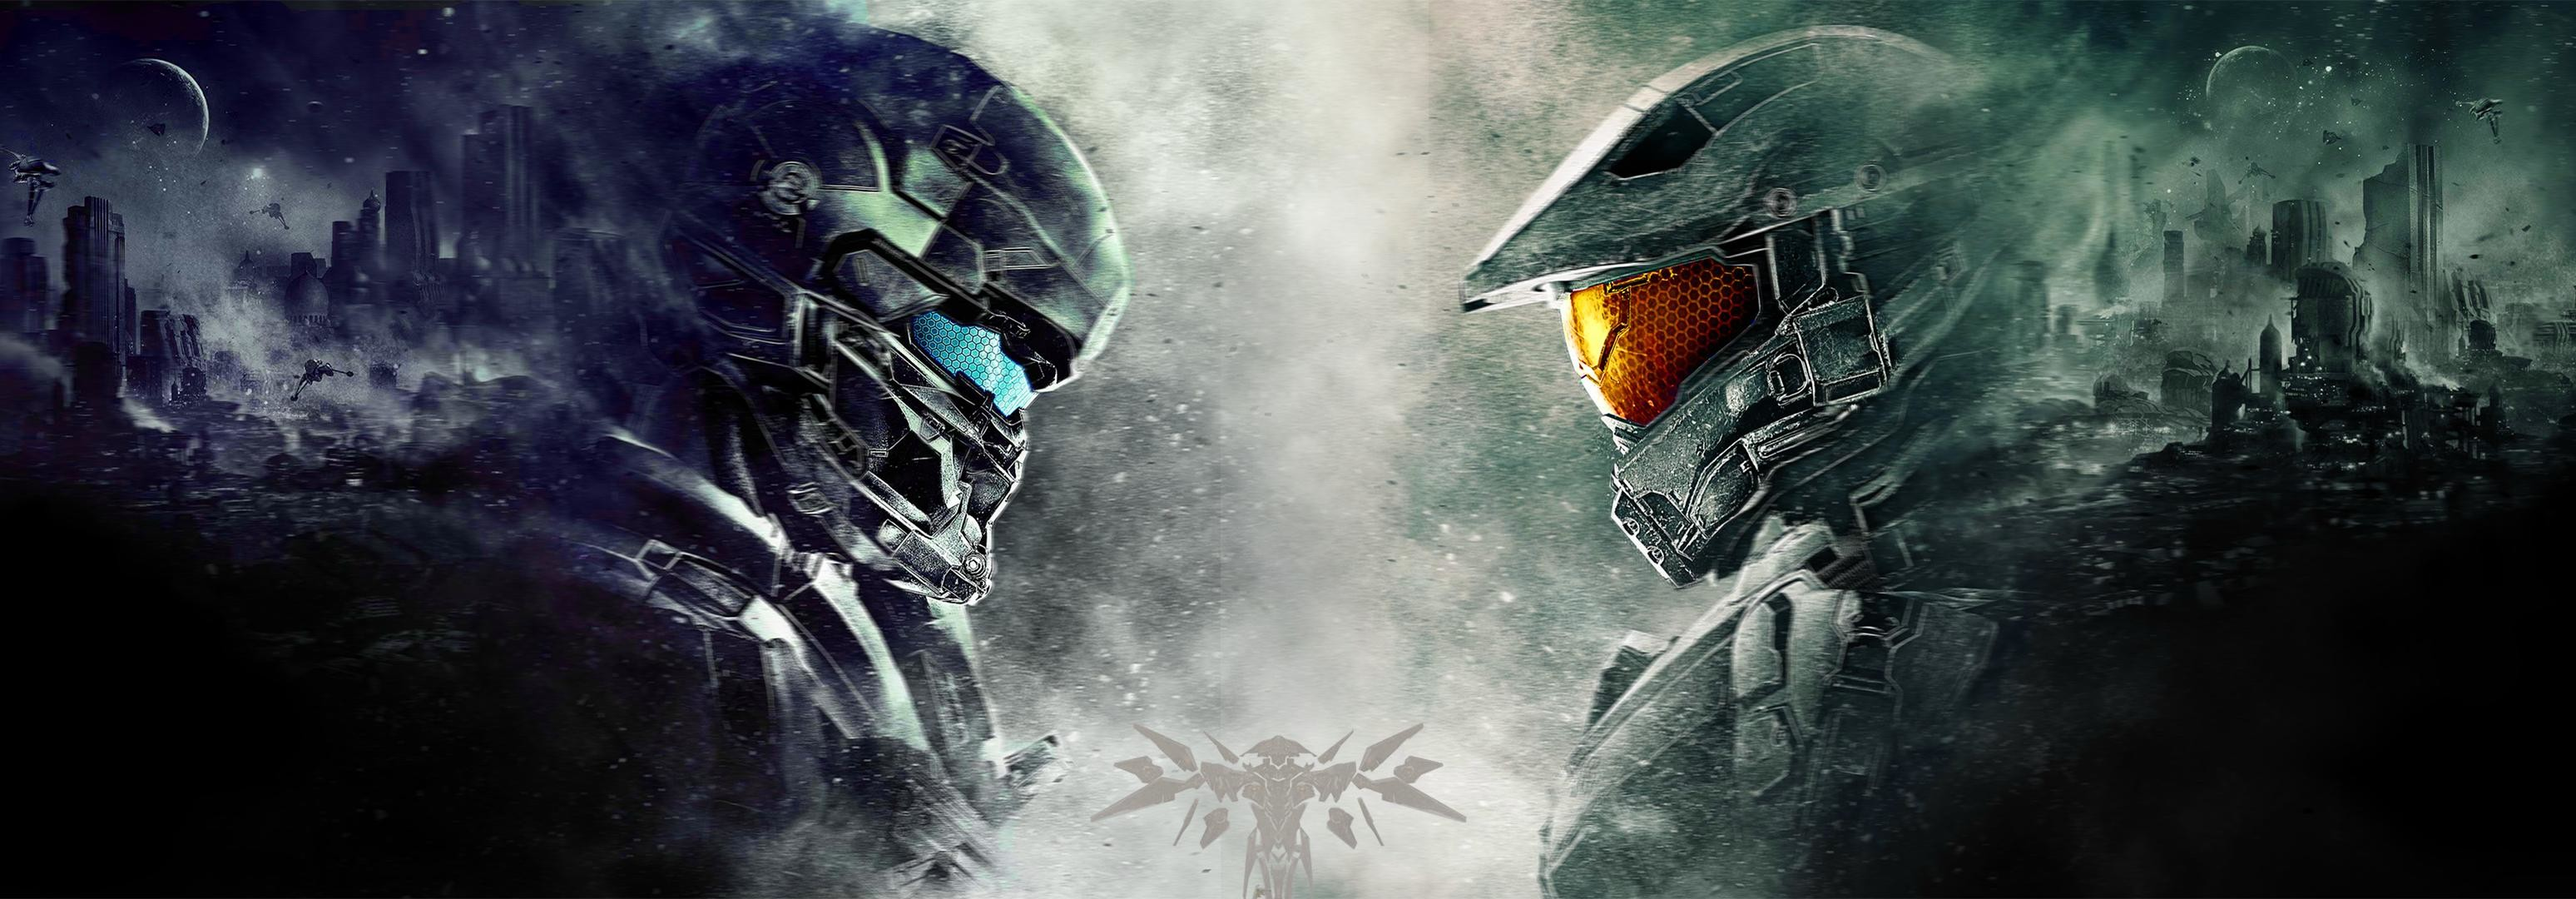 78 Halo 1080P Wallpapers on WallpaperPlay 3096x1080